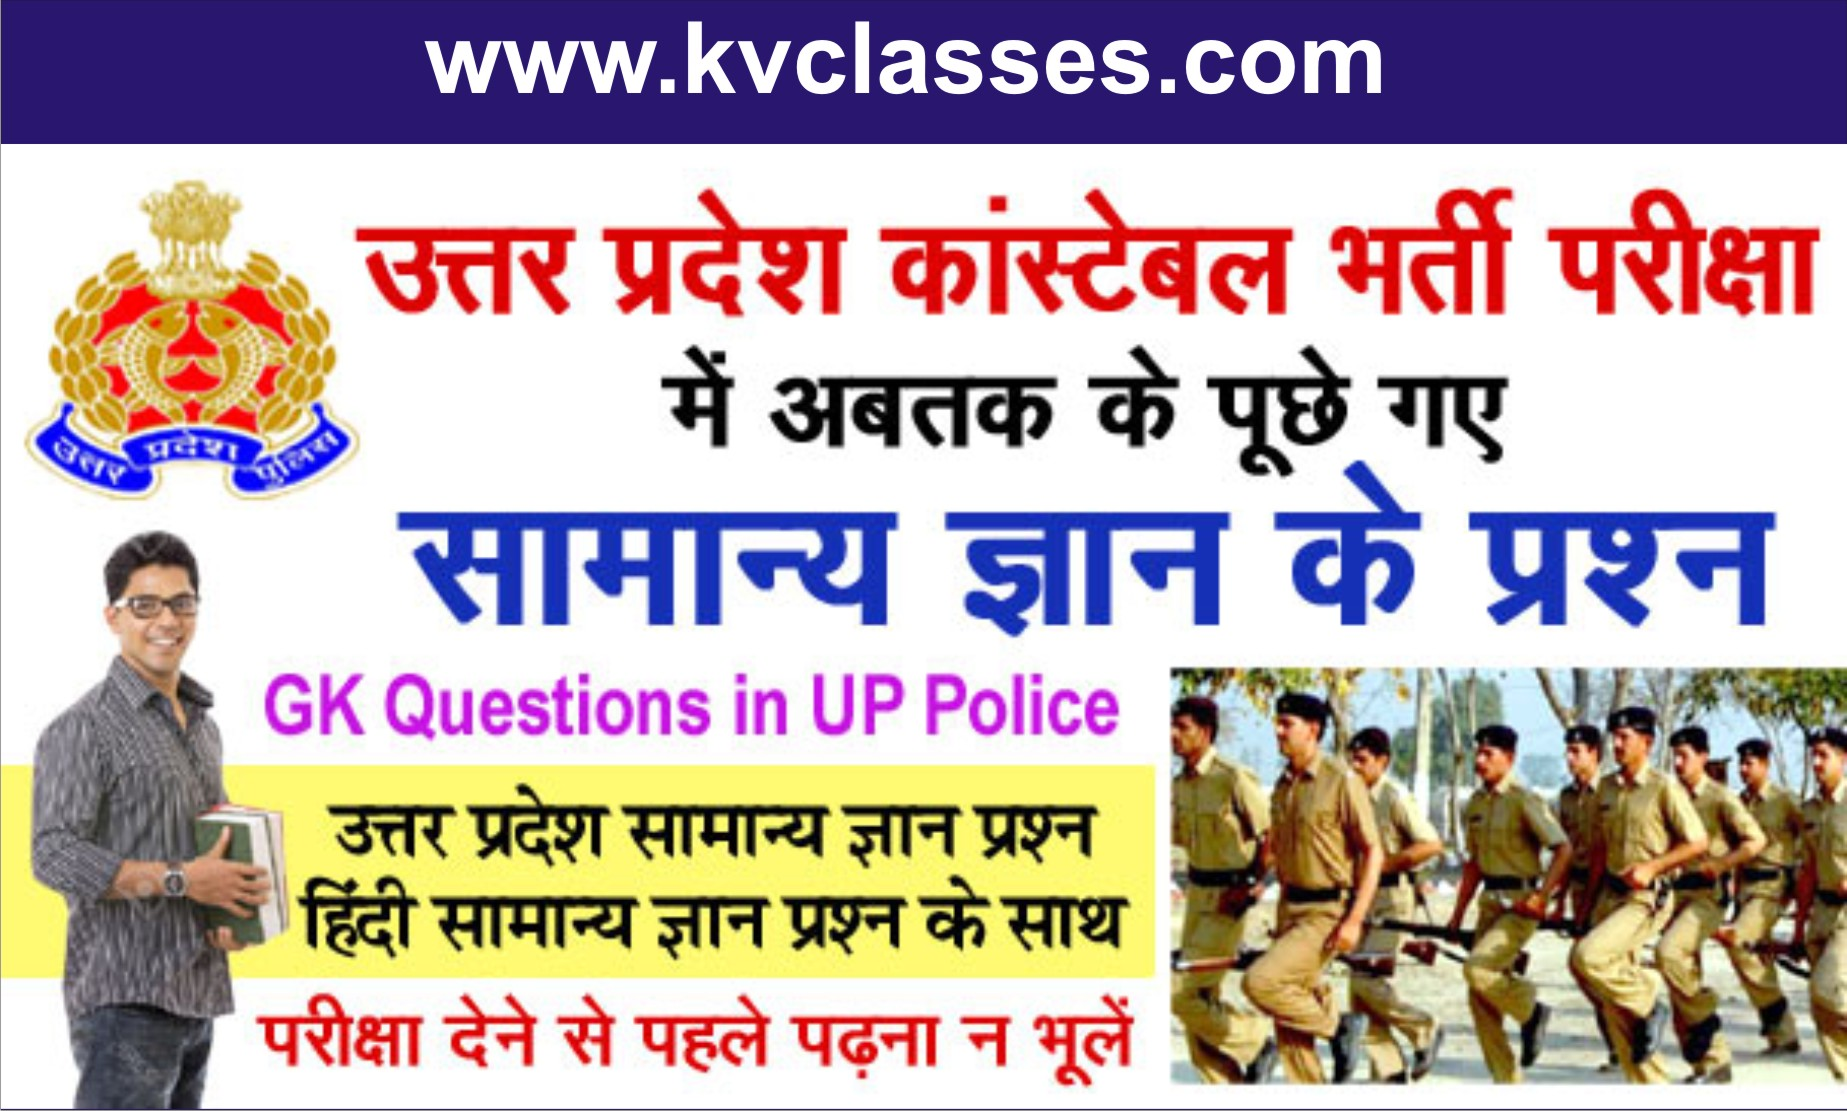 Previous Year Questions asked in Uttar Pradesh Constable recruitment